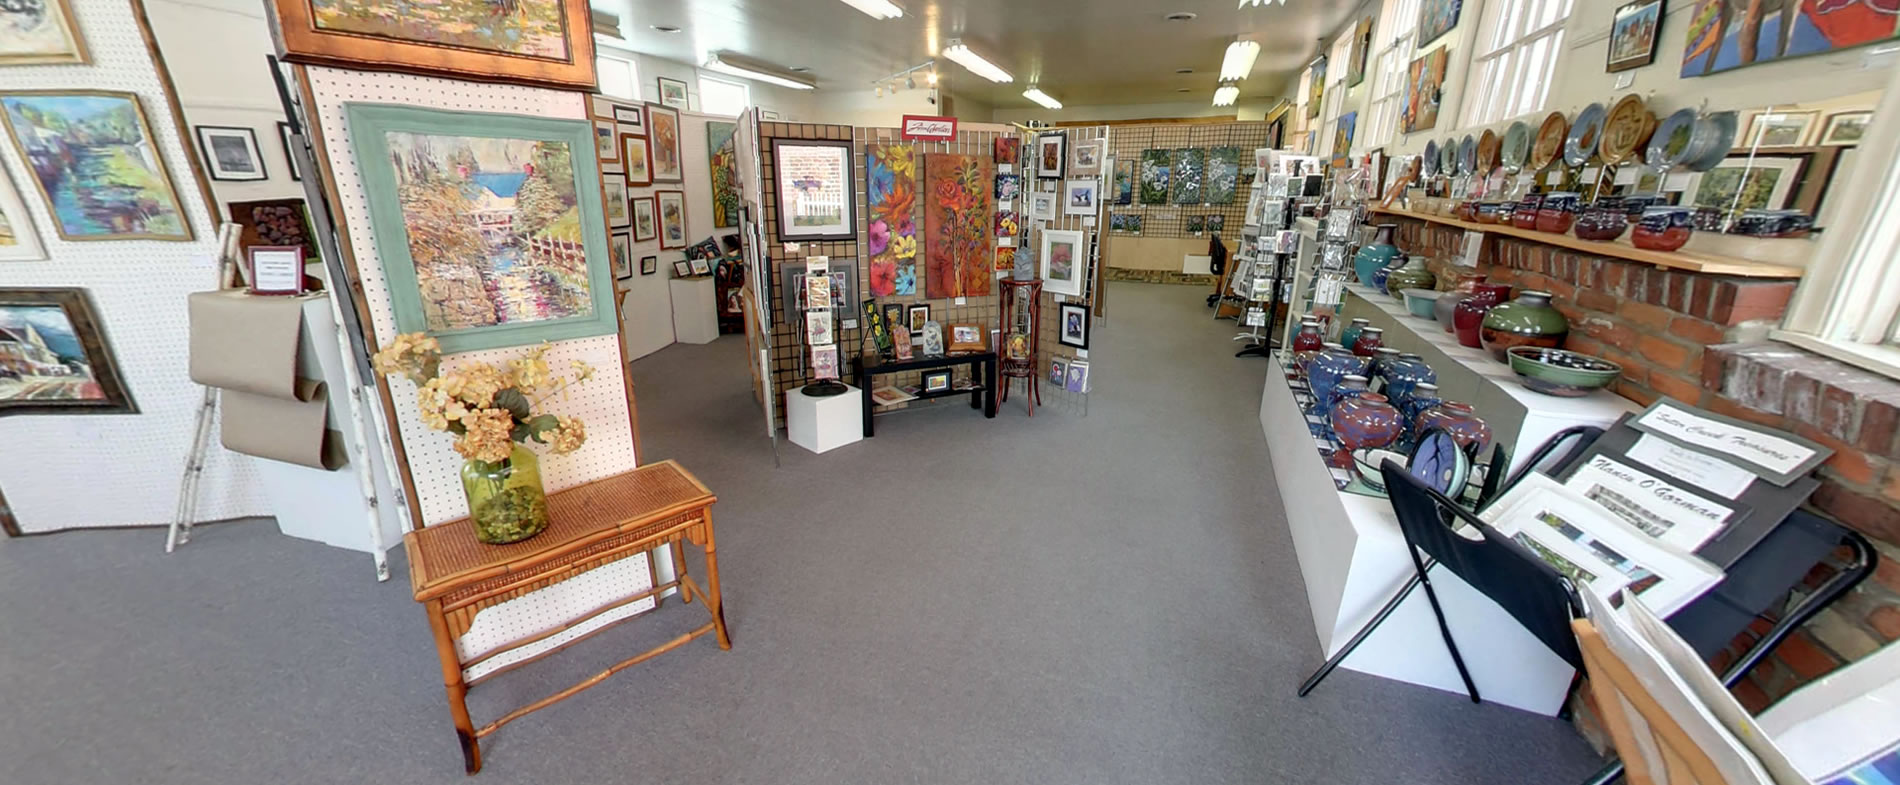 art galleries sutter creek shopping on main street